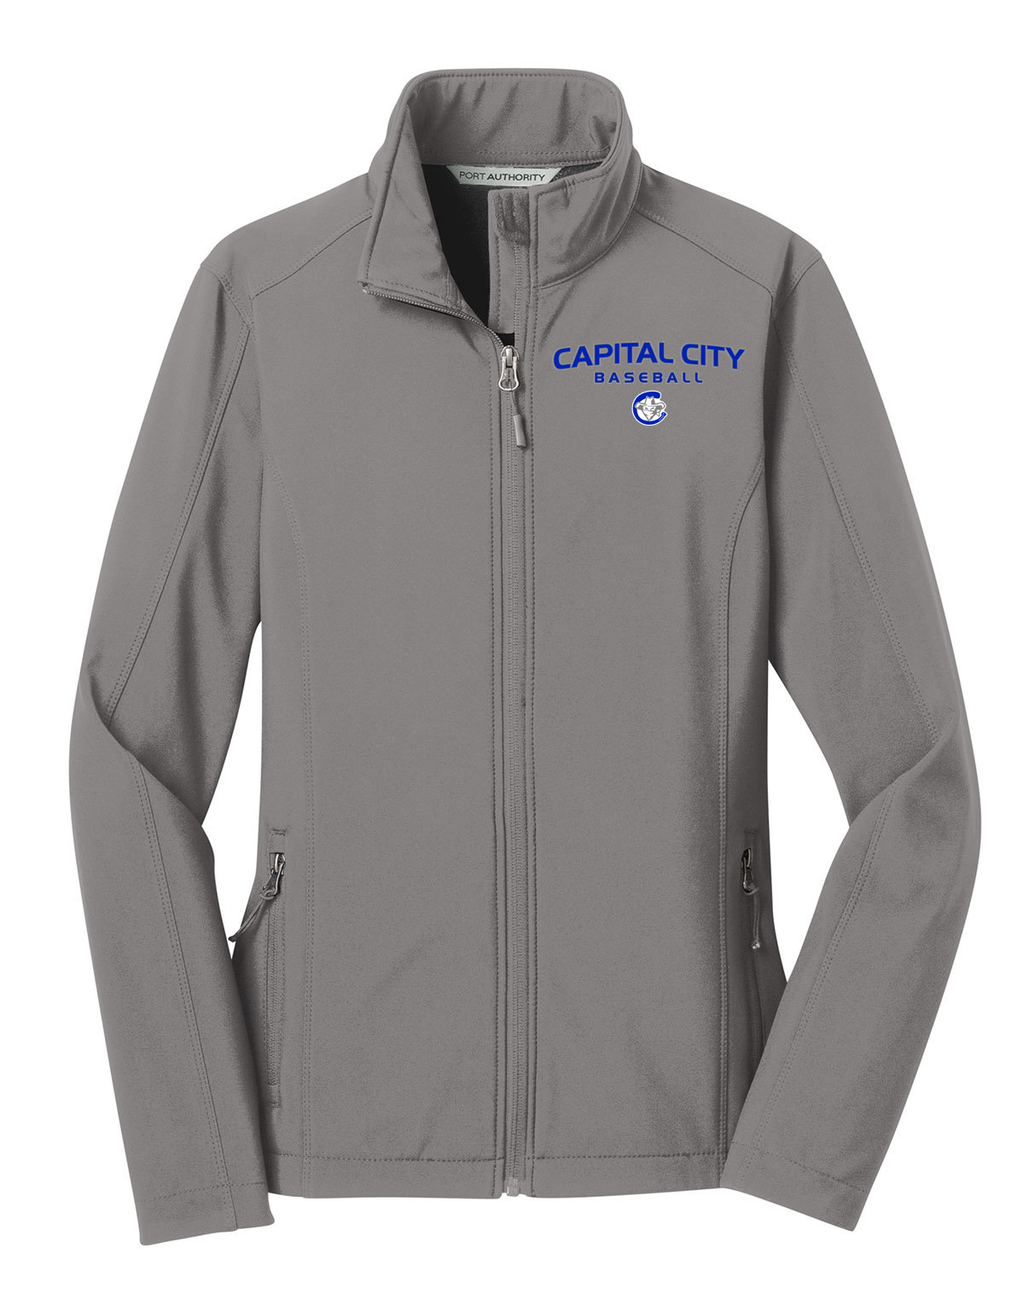 Capital City Baseball Women's Soft Shell Jacket